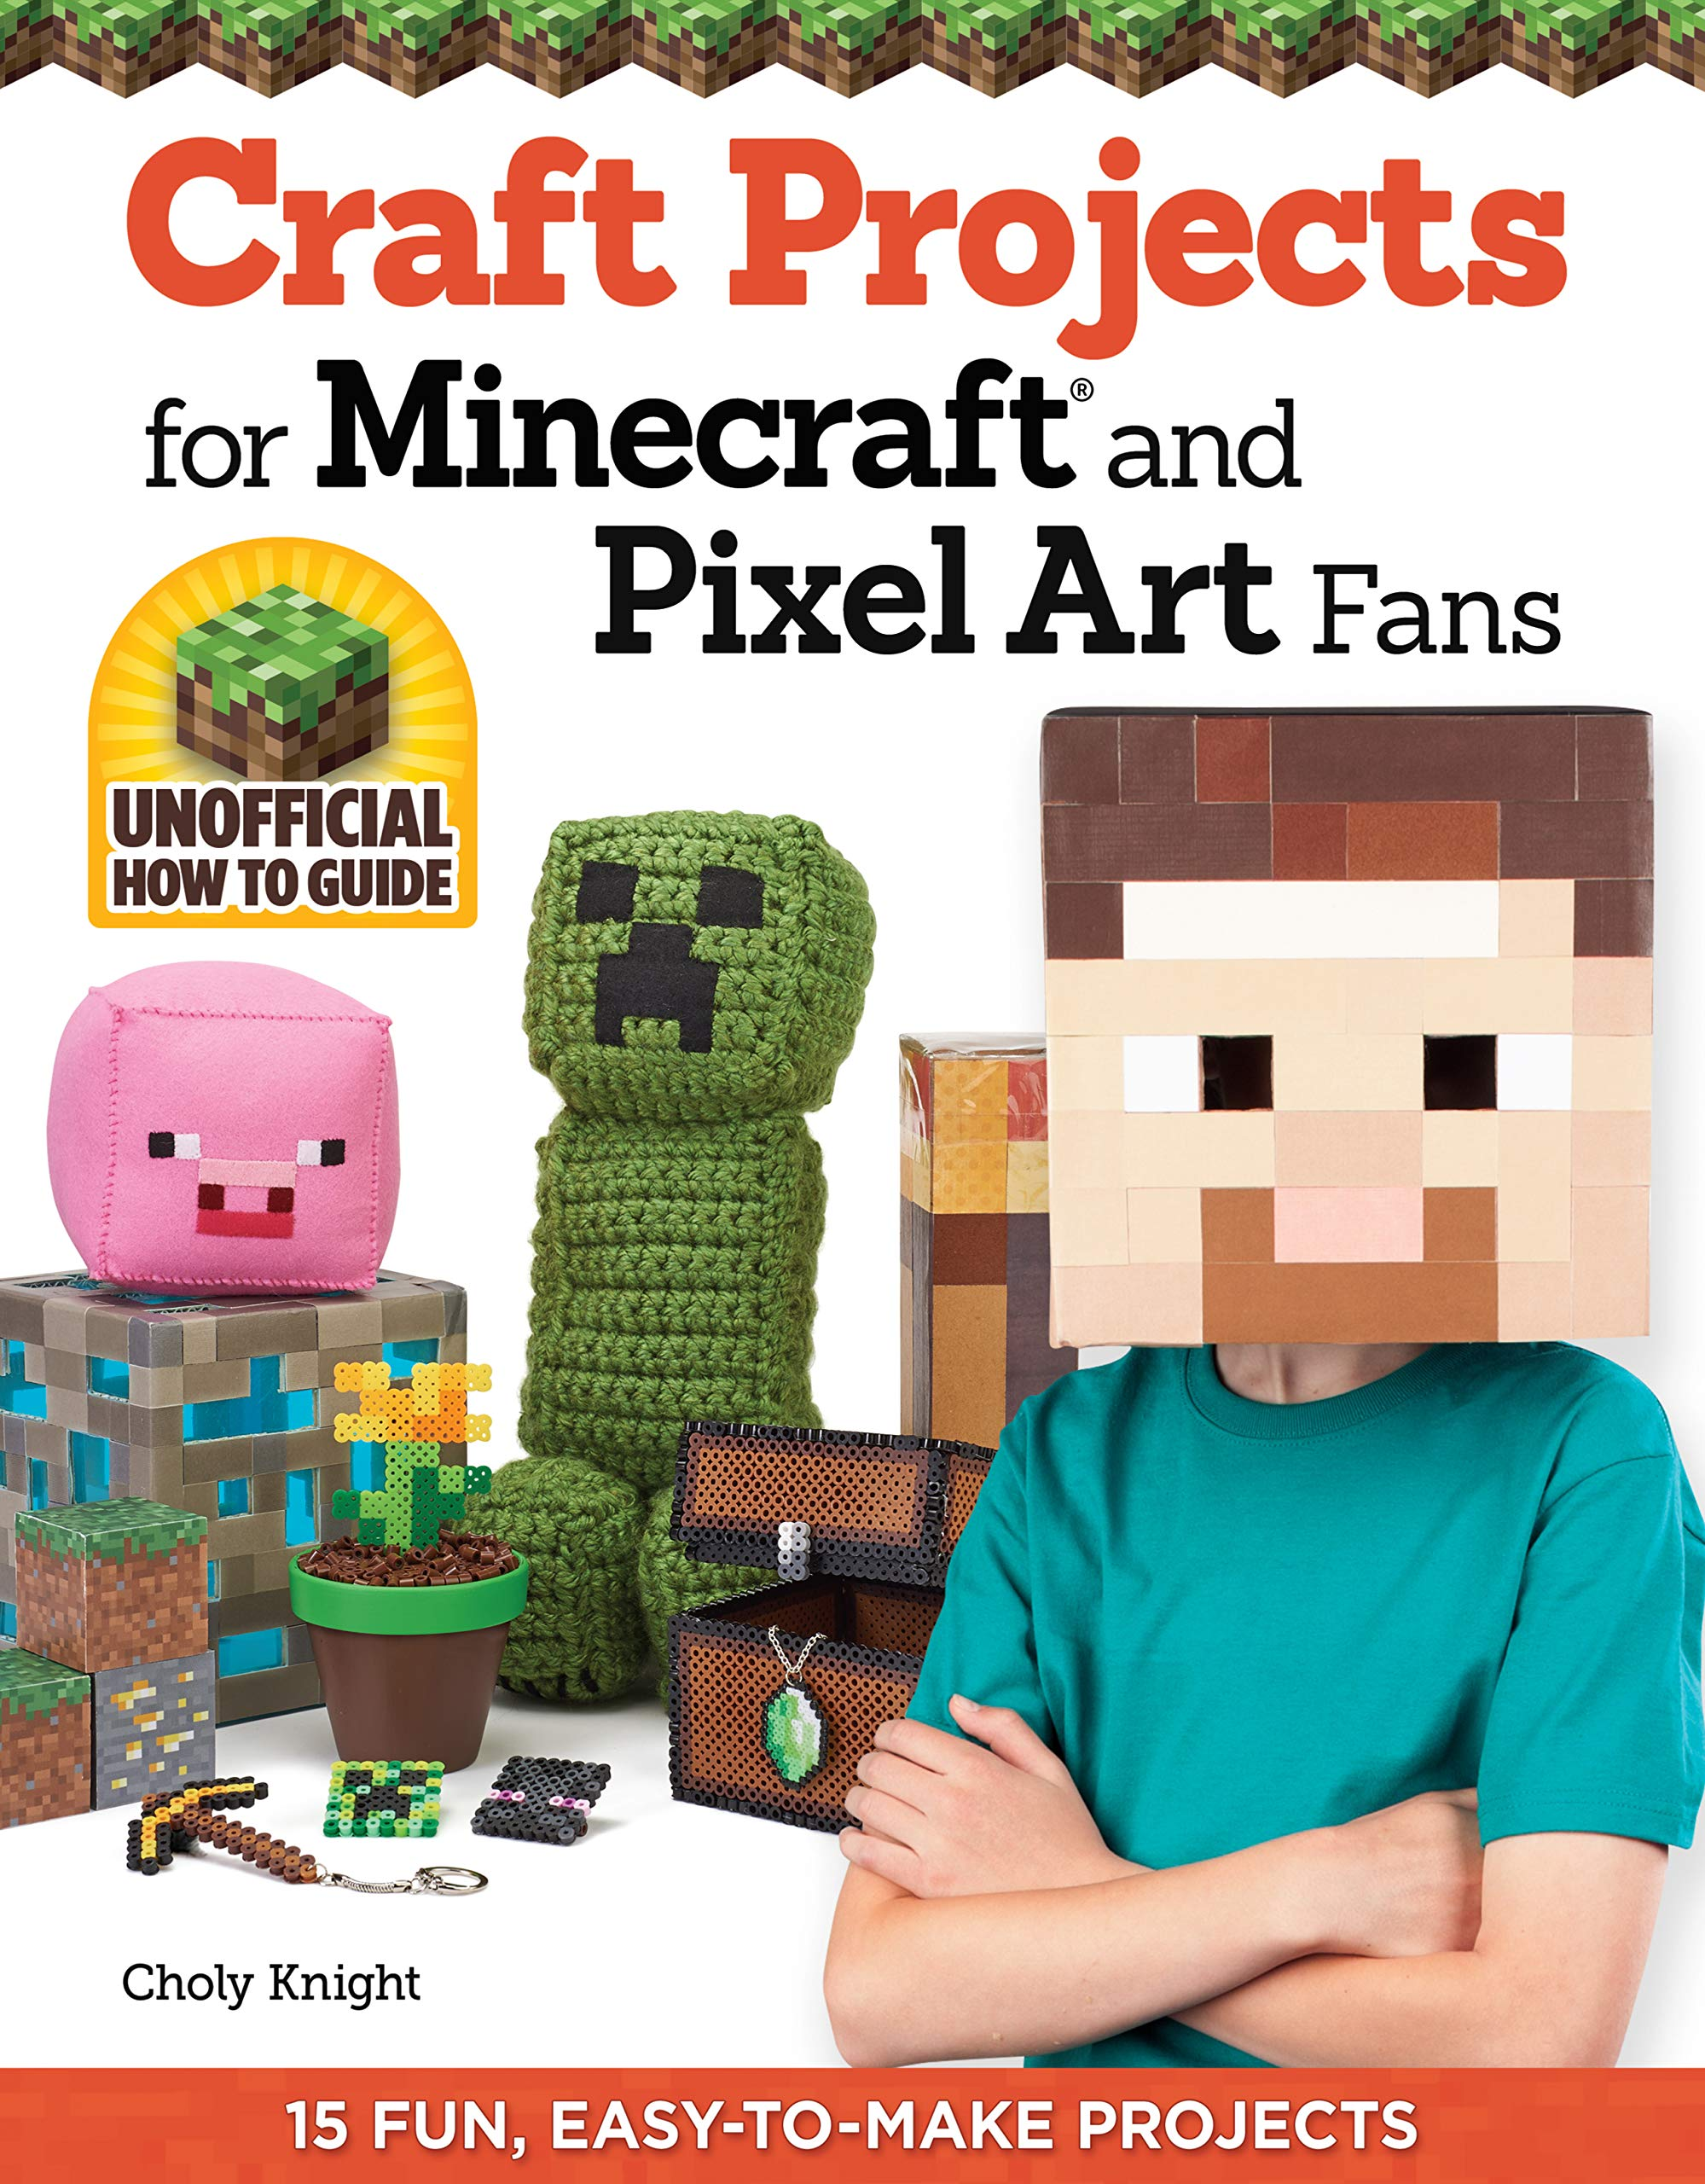 Craft Projects For Minecraft And Pixel Art Fans 15 Fun Easy To Make Projects Design Originals Create Irl Versions Of Creepers Tools Blocks In The Pixelated Style Of Your Favorite Video Game Knight